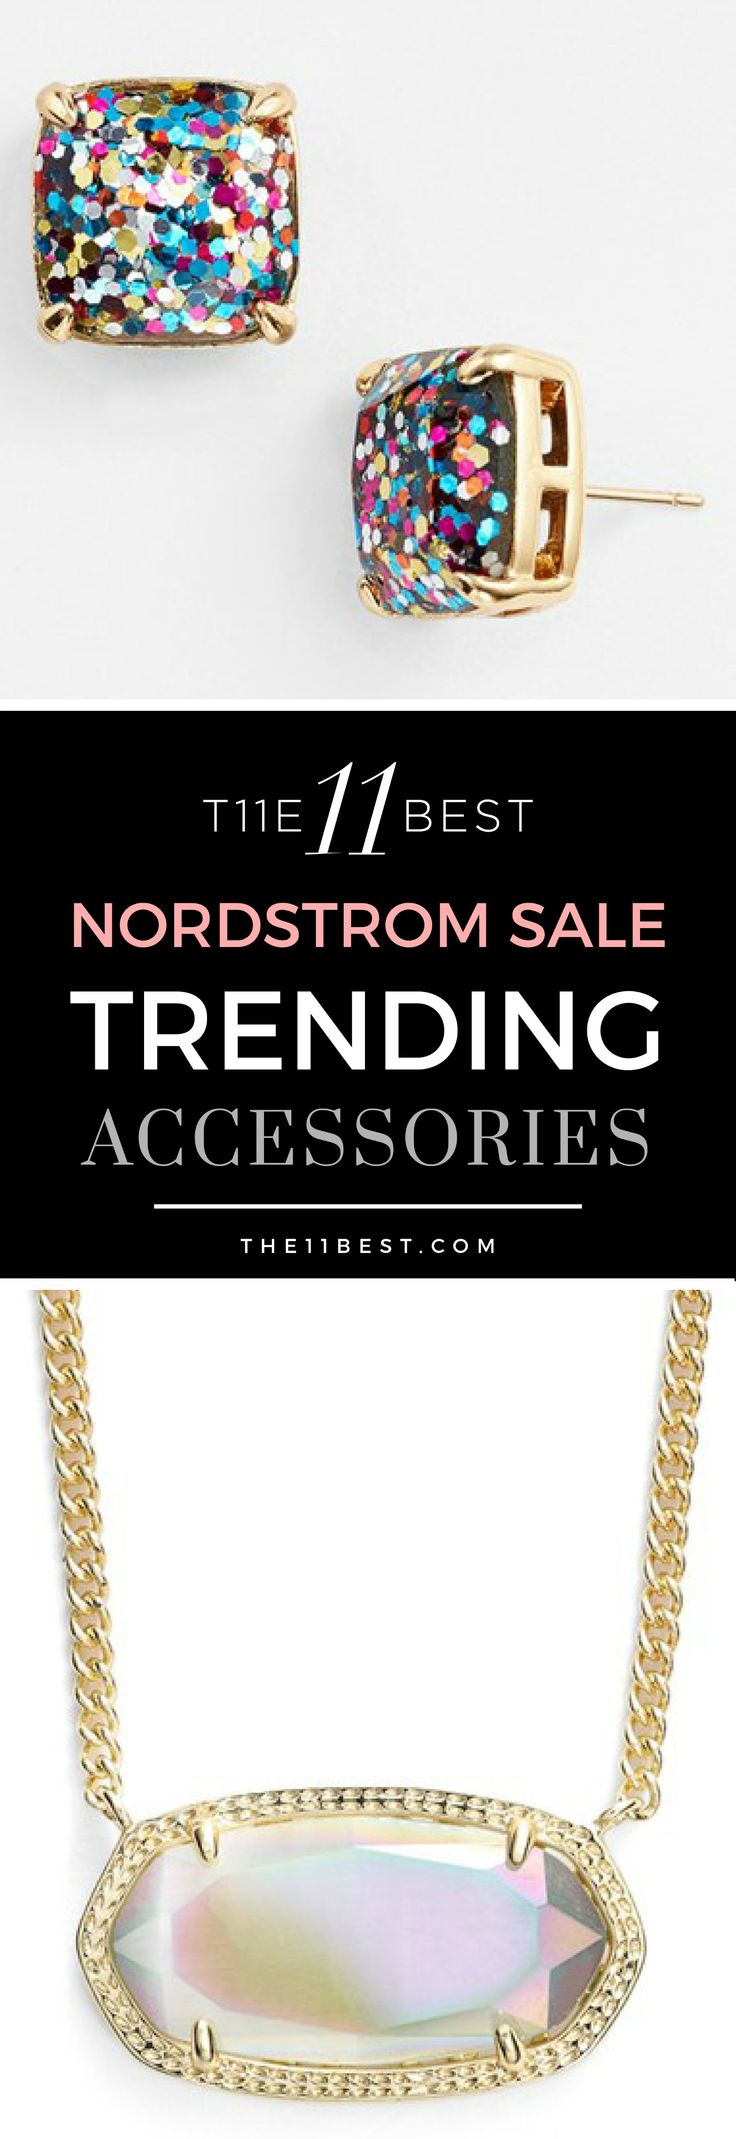 The 11 Best Trending Accessories at the Nordstrom Sale